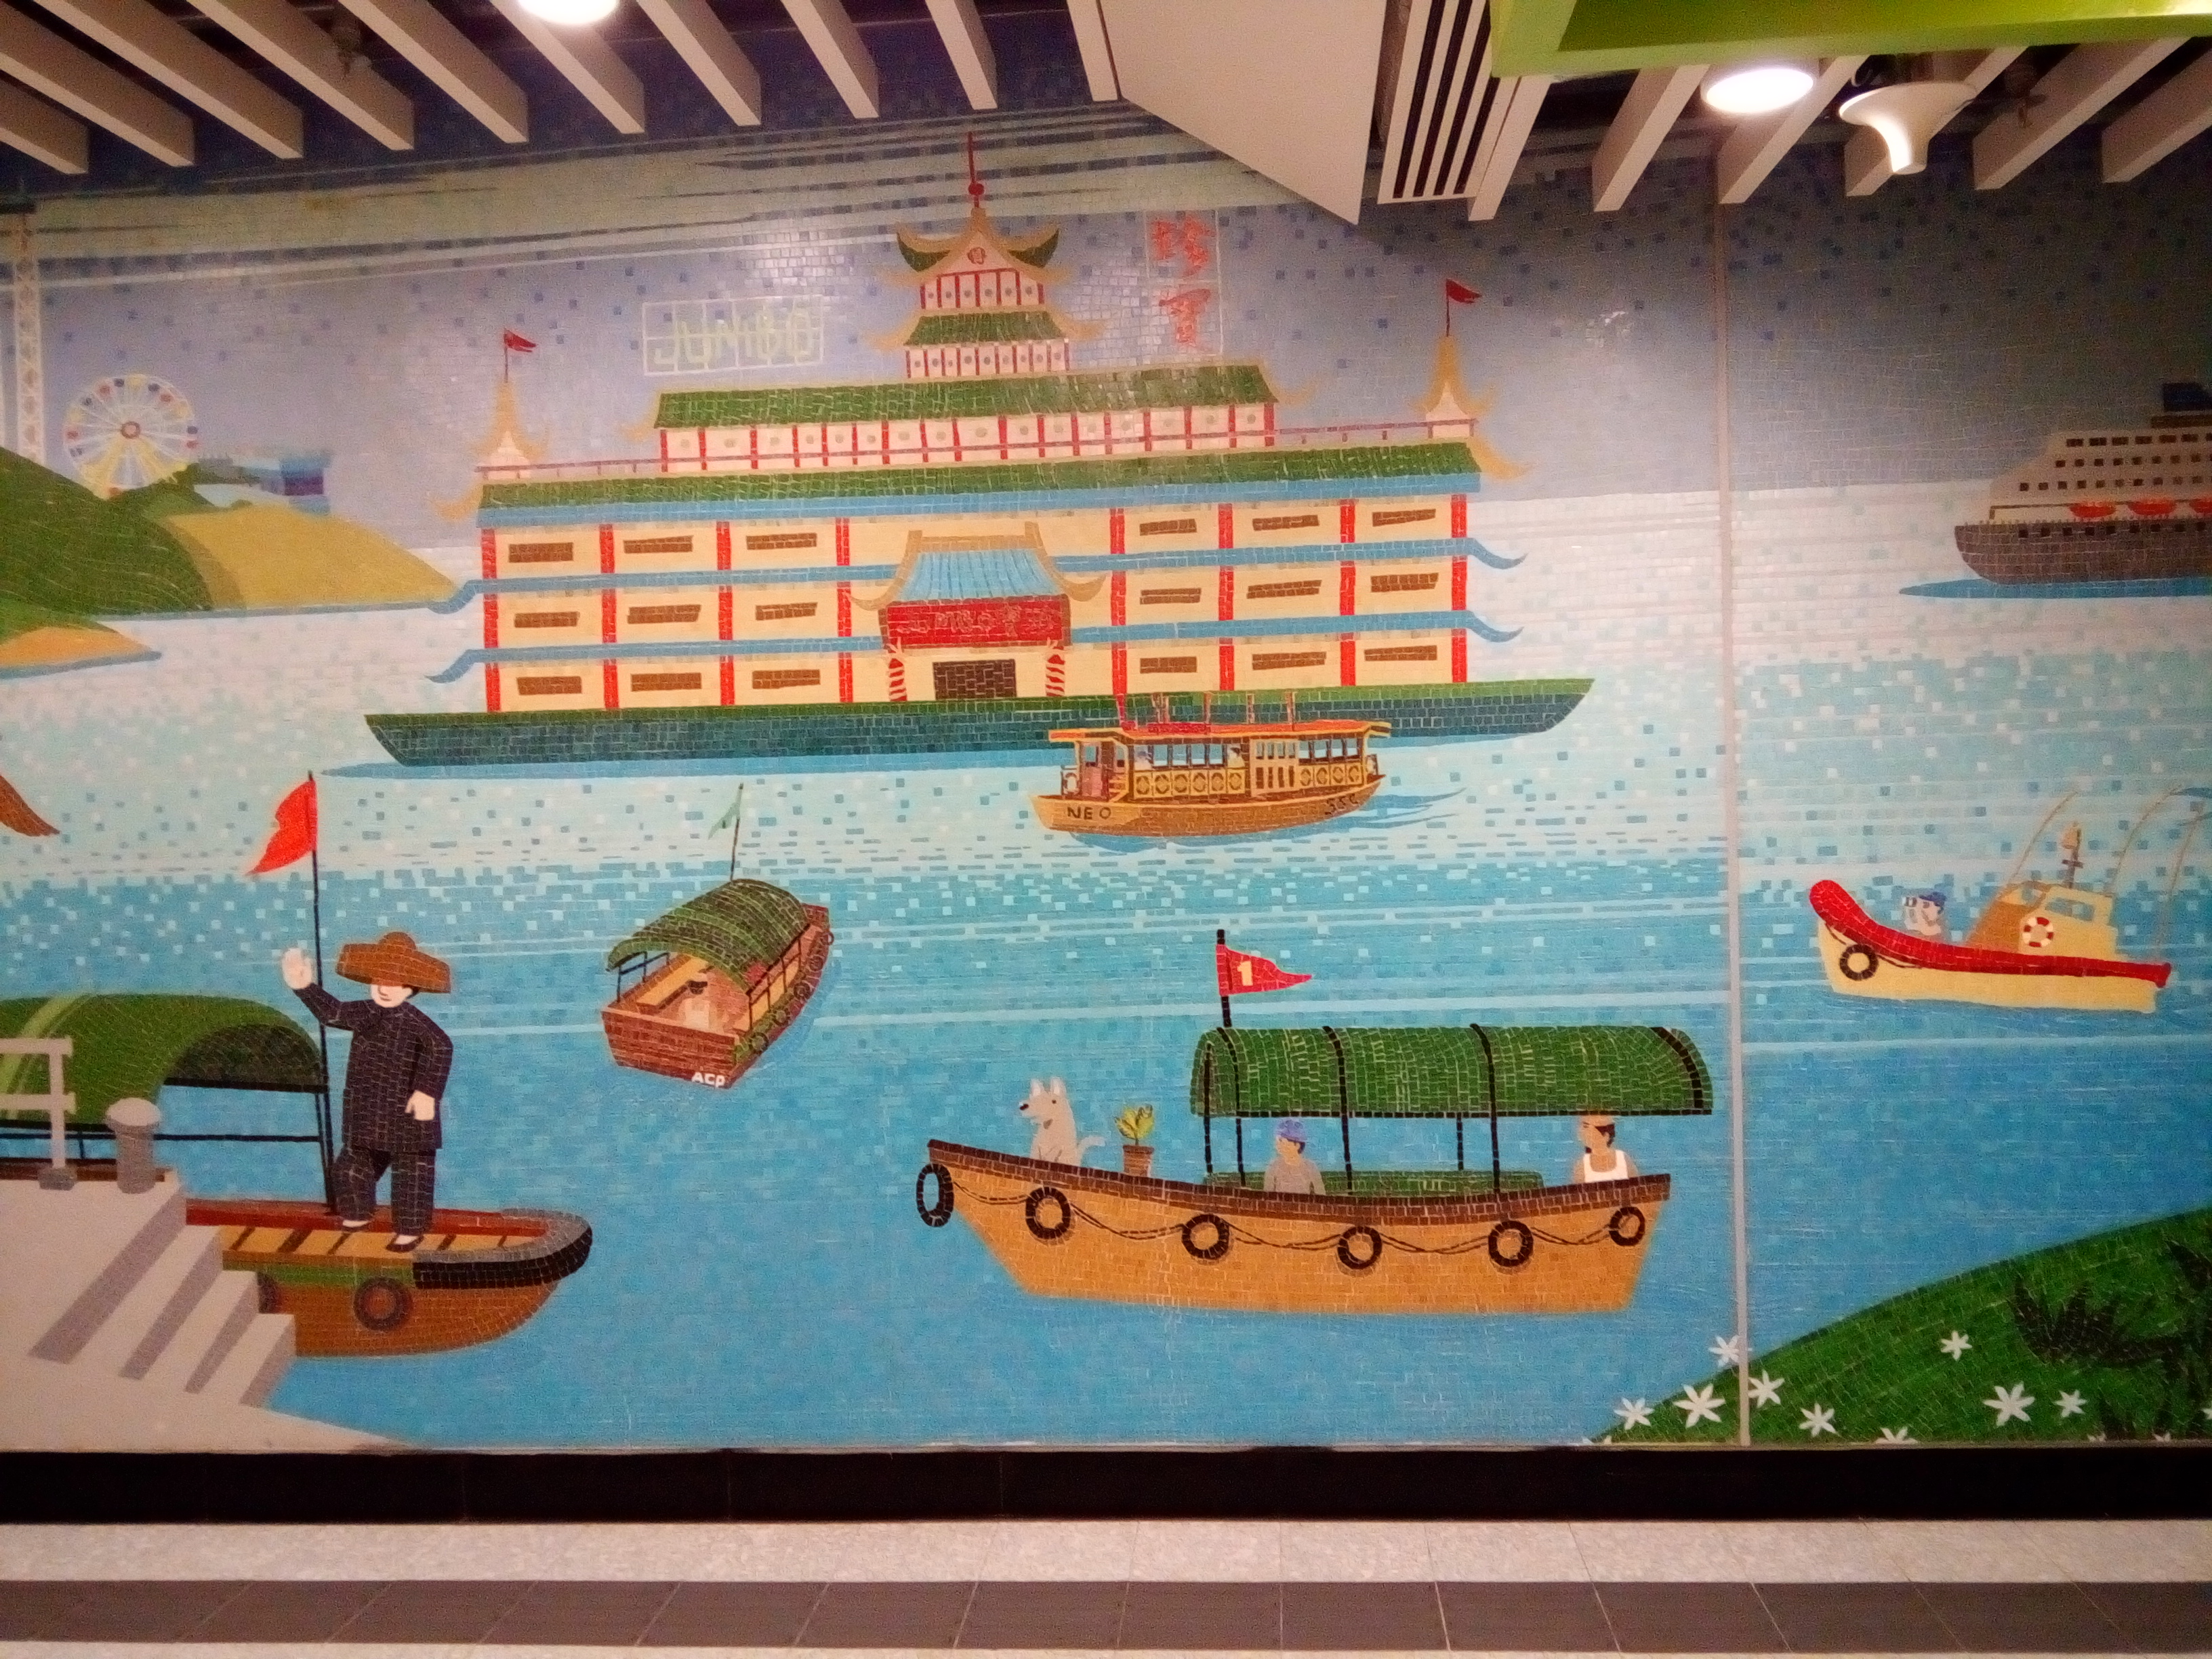 Wall Decoration Hk : File hk alc mtr south horizons station platform